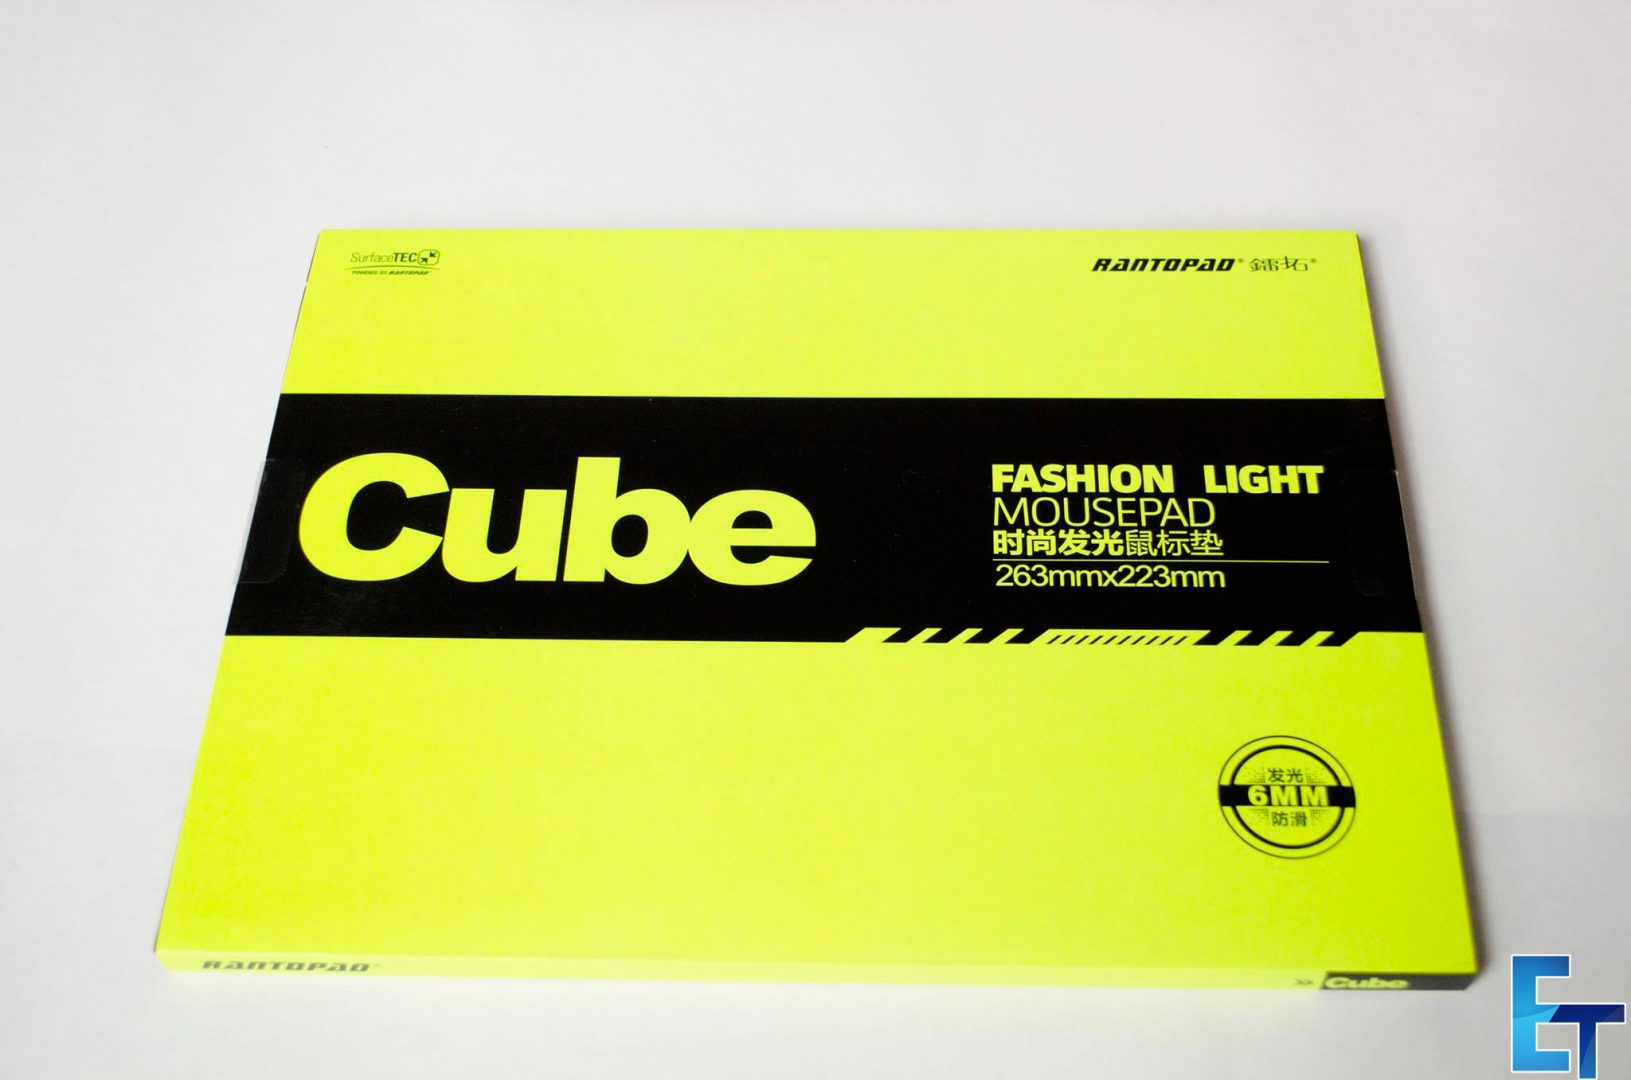 Rantopad-Cube-Fashion-Light-Mousepad